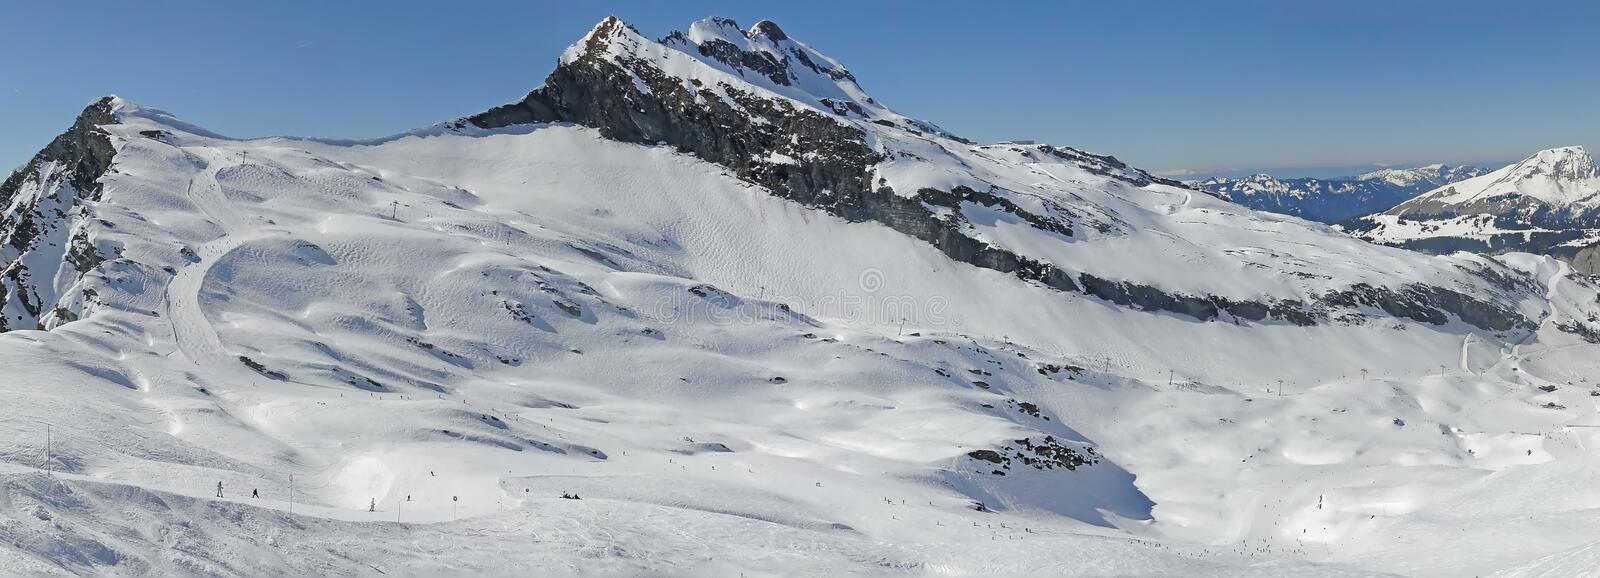 Download High Alpine Ski Area In The French Alps Stock Photo - Image: 28576084